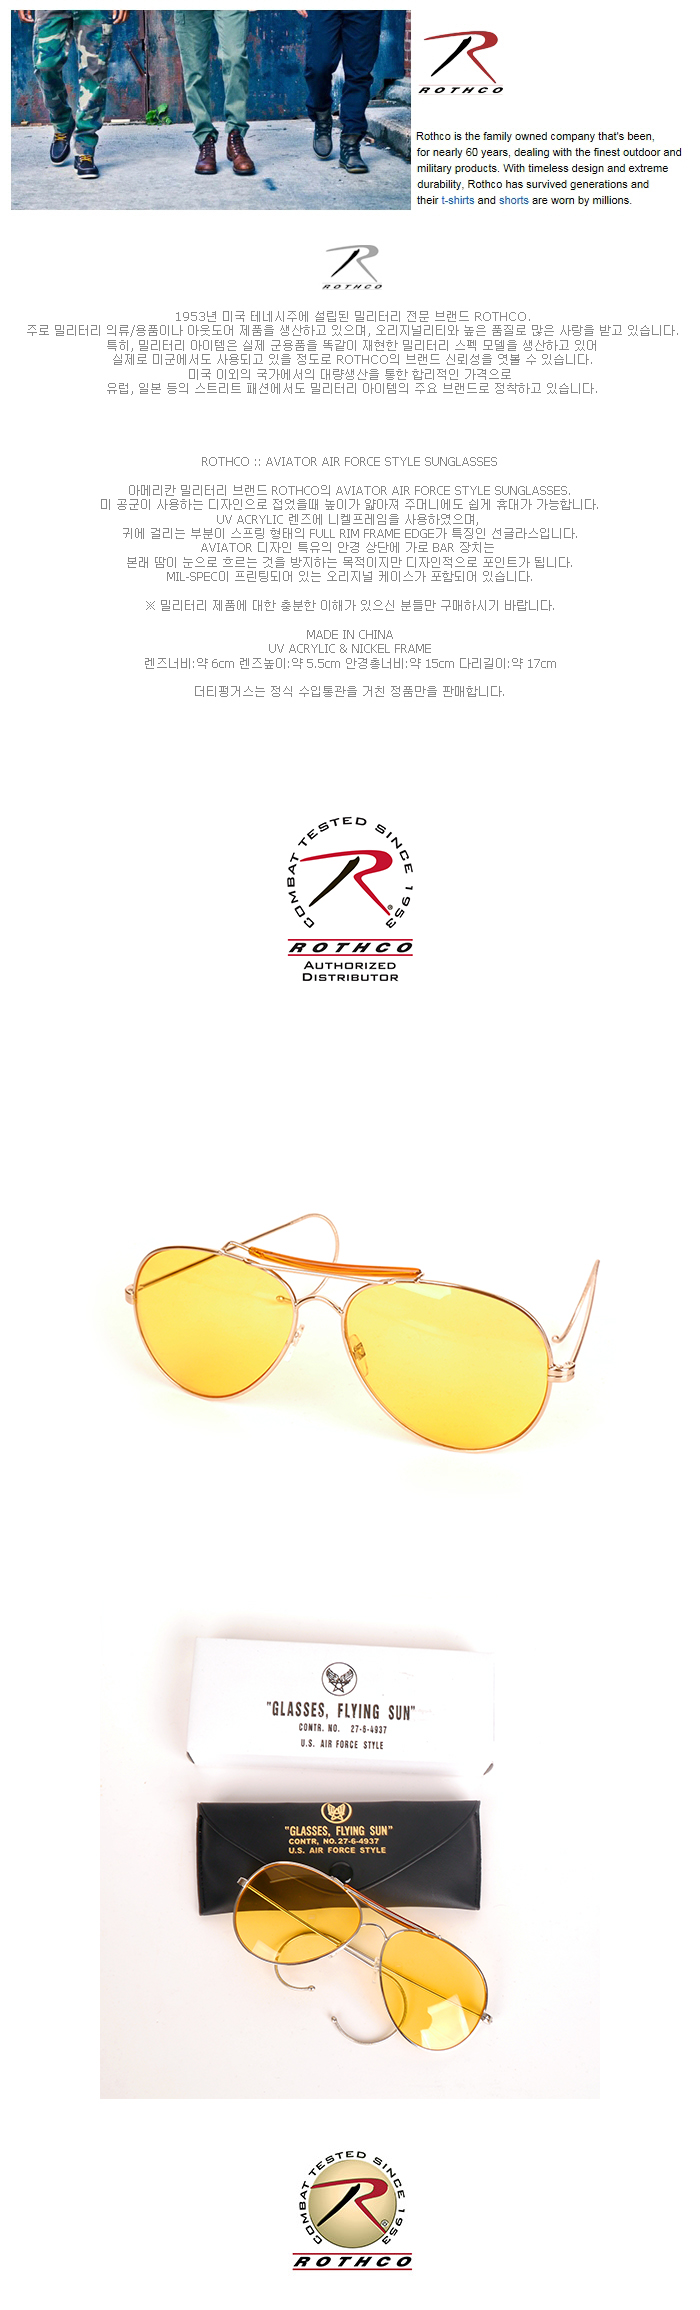 6346c9f01fe 로스코(ROTHCO) AIR FORCE STYLE SUNGLASS (YELLOW) - 32